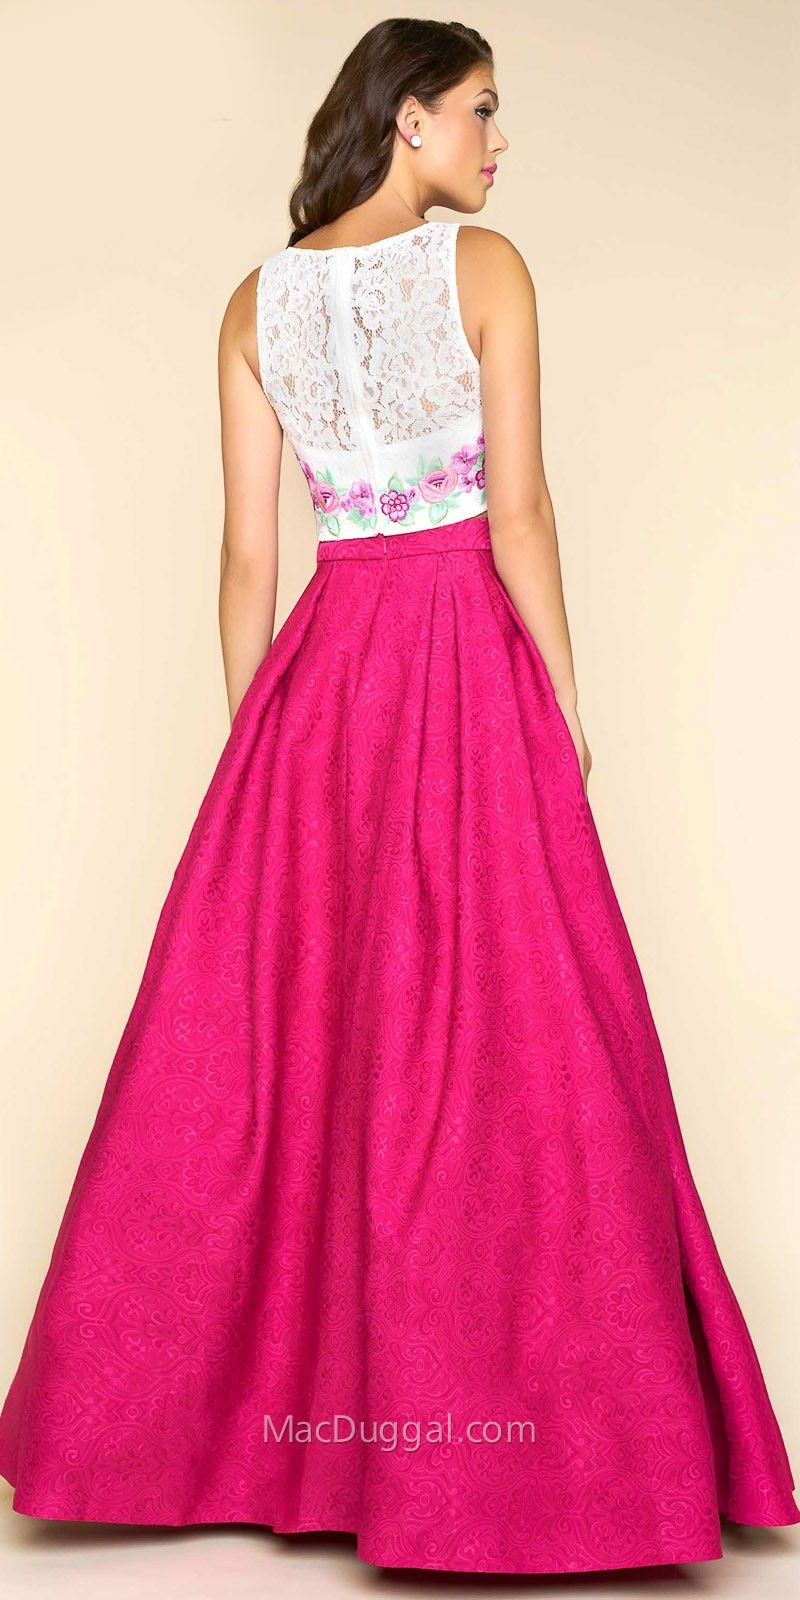 Two Piece Brocade Floral Embroidered Prom Dress By Mac Duggal ...